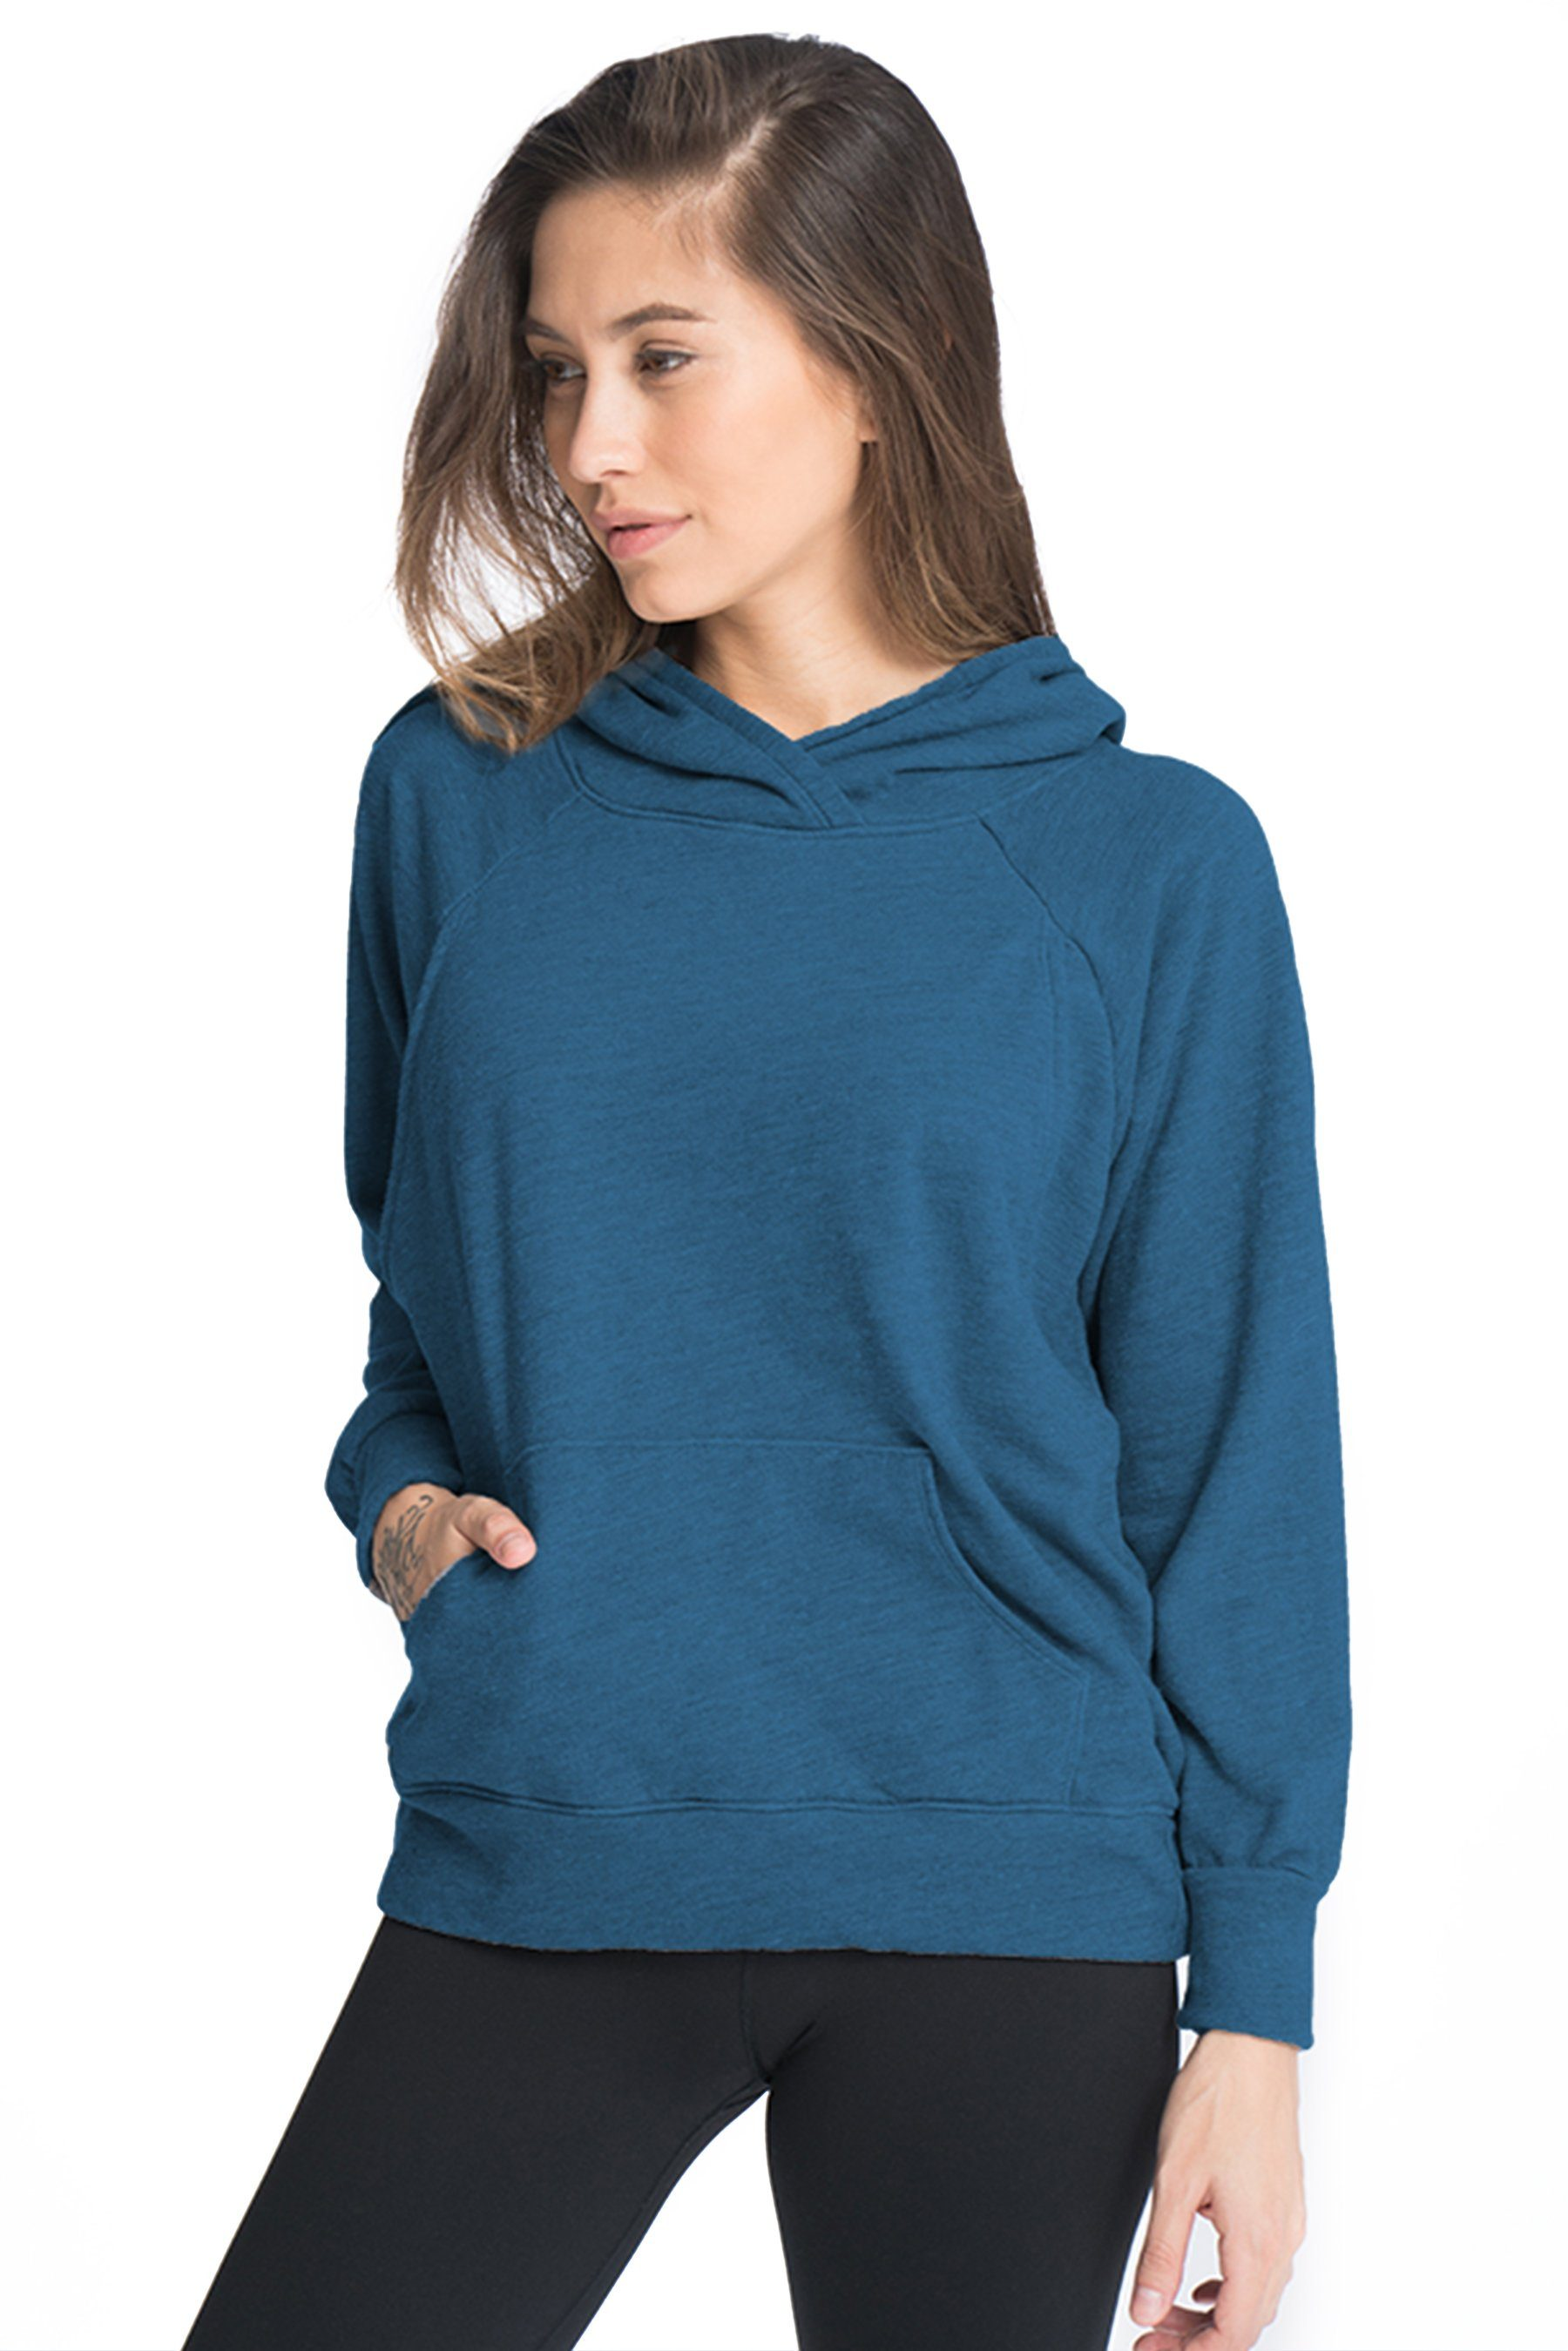 Relaxed Daily Nursing Hoodie Hoodie Bun Maternity Nursing Apparel